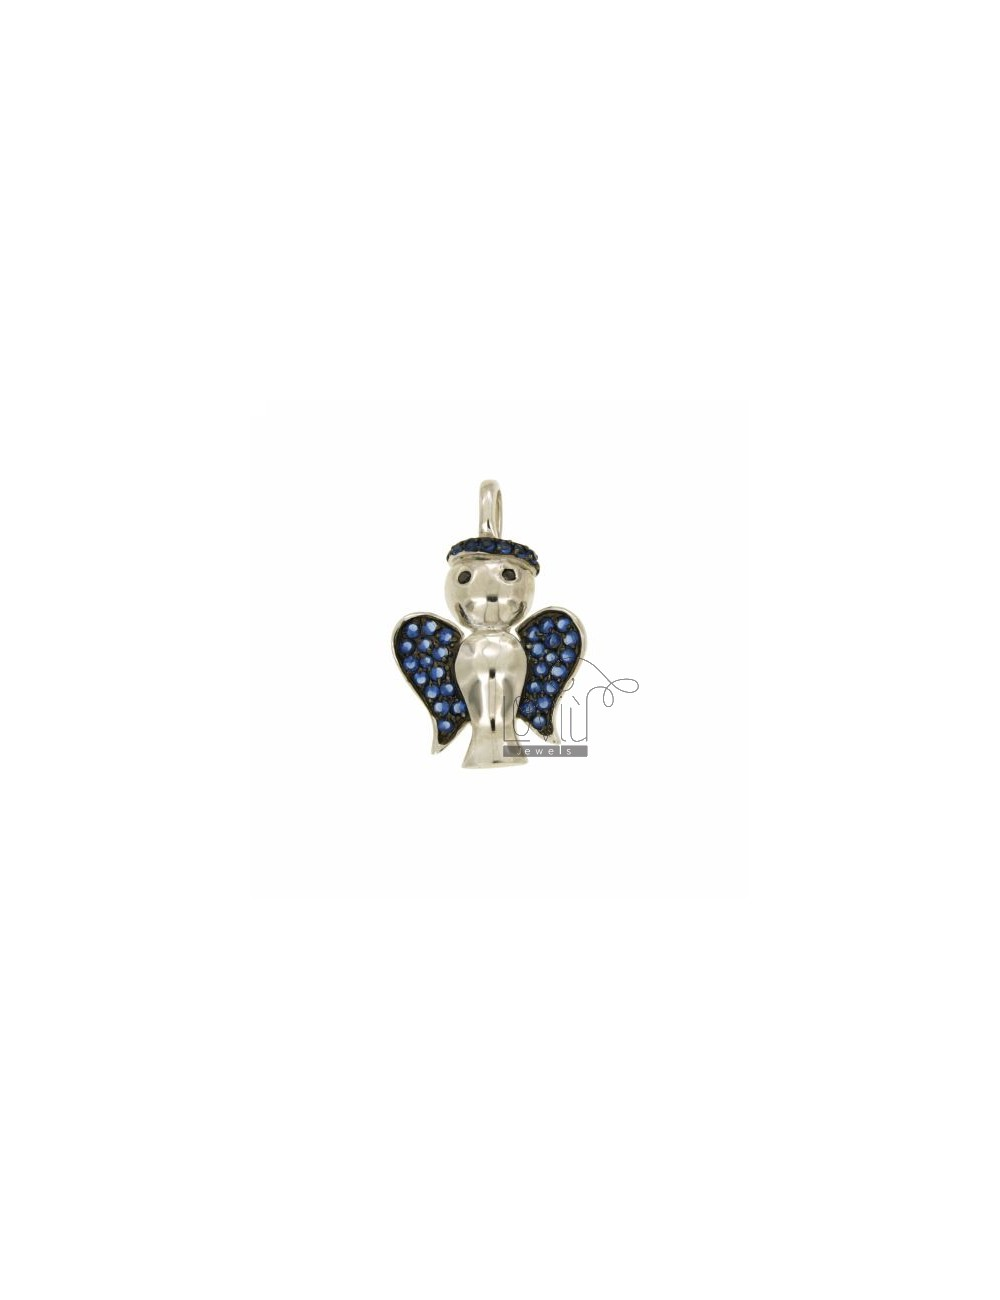 PENDANT ANGEL 29X19 MM IN AG TIT 925 ‰ AND ZIRCONIA